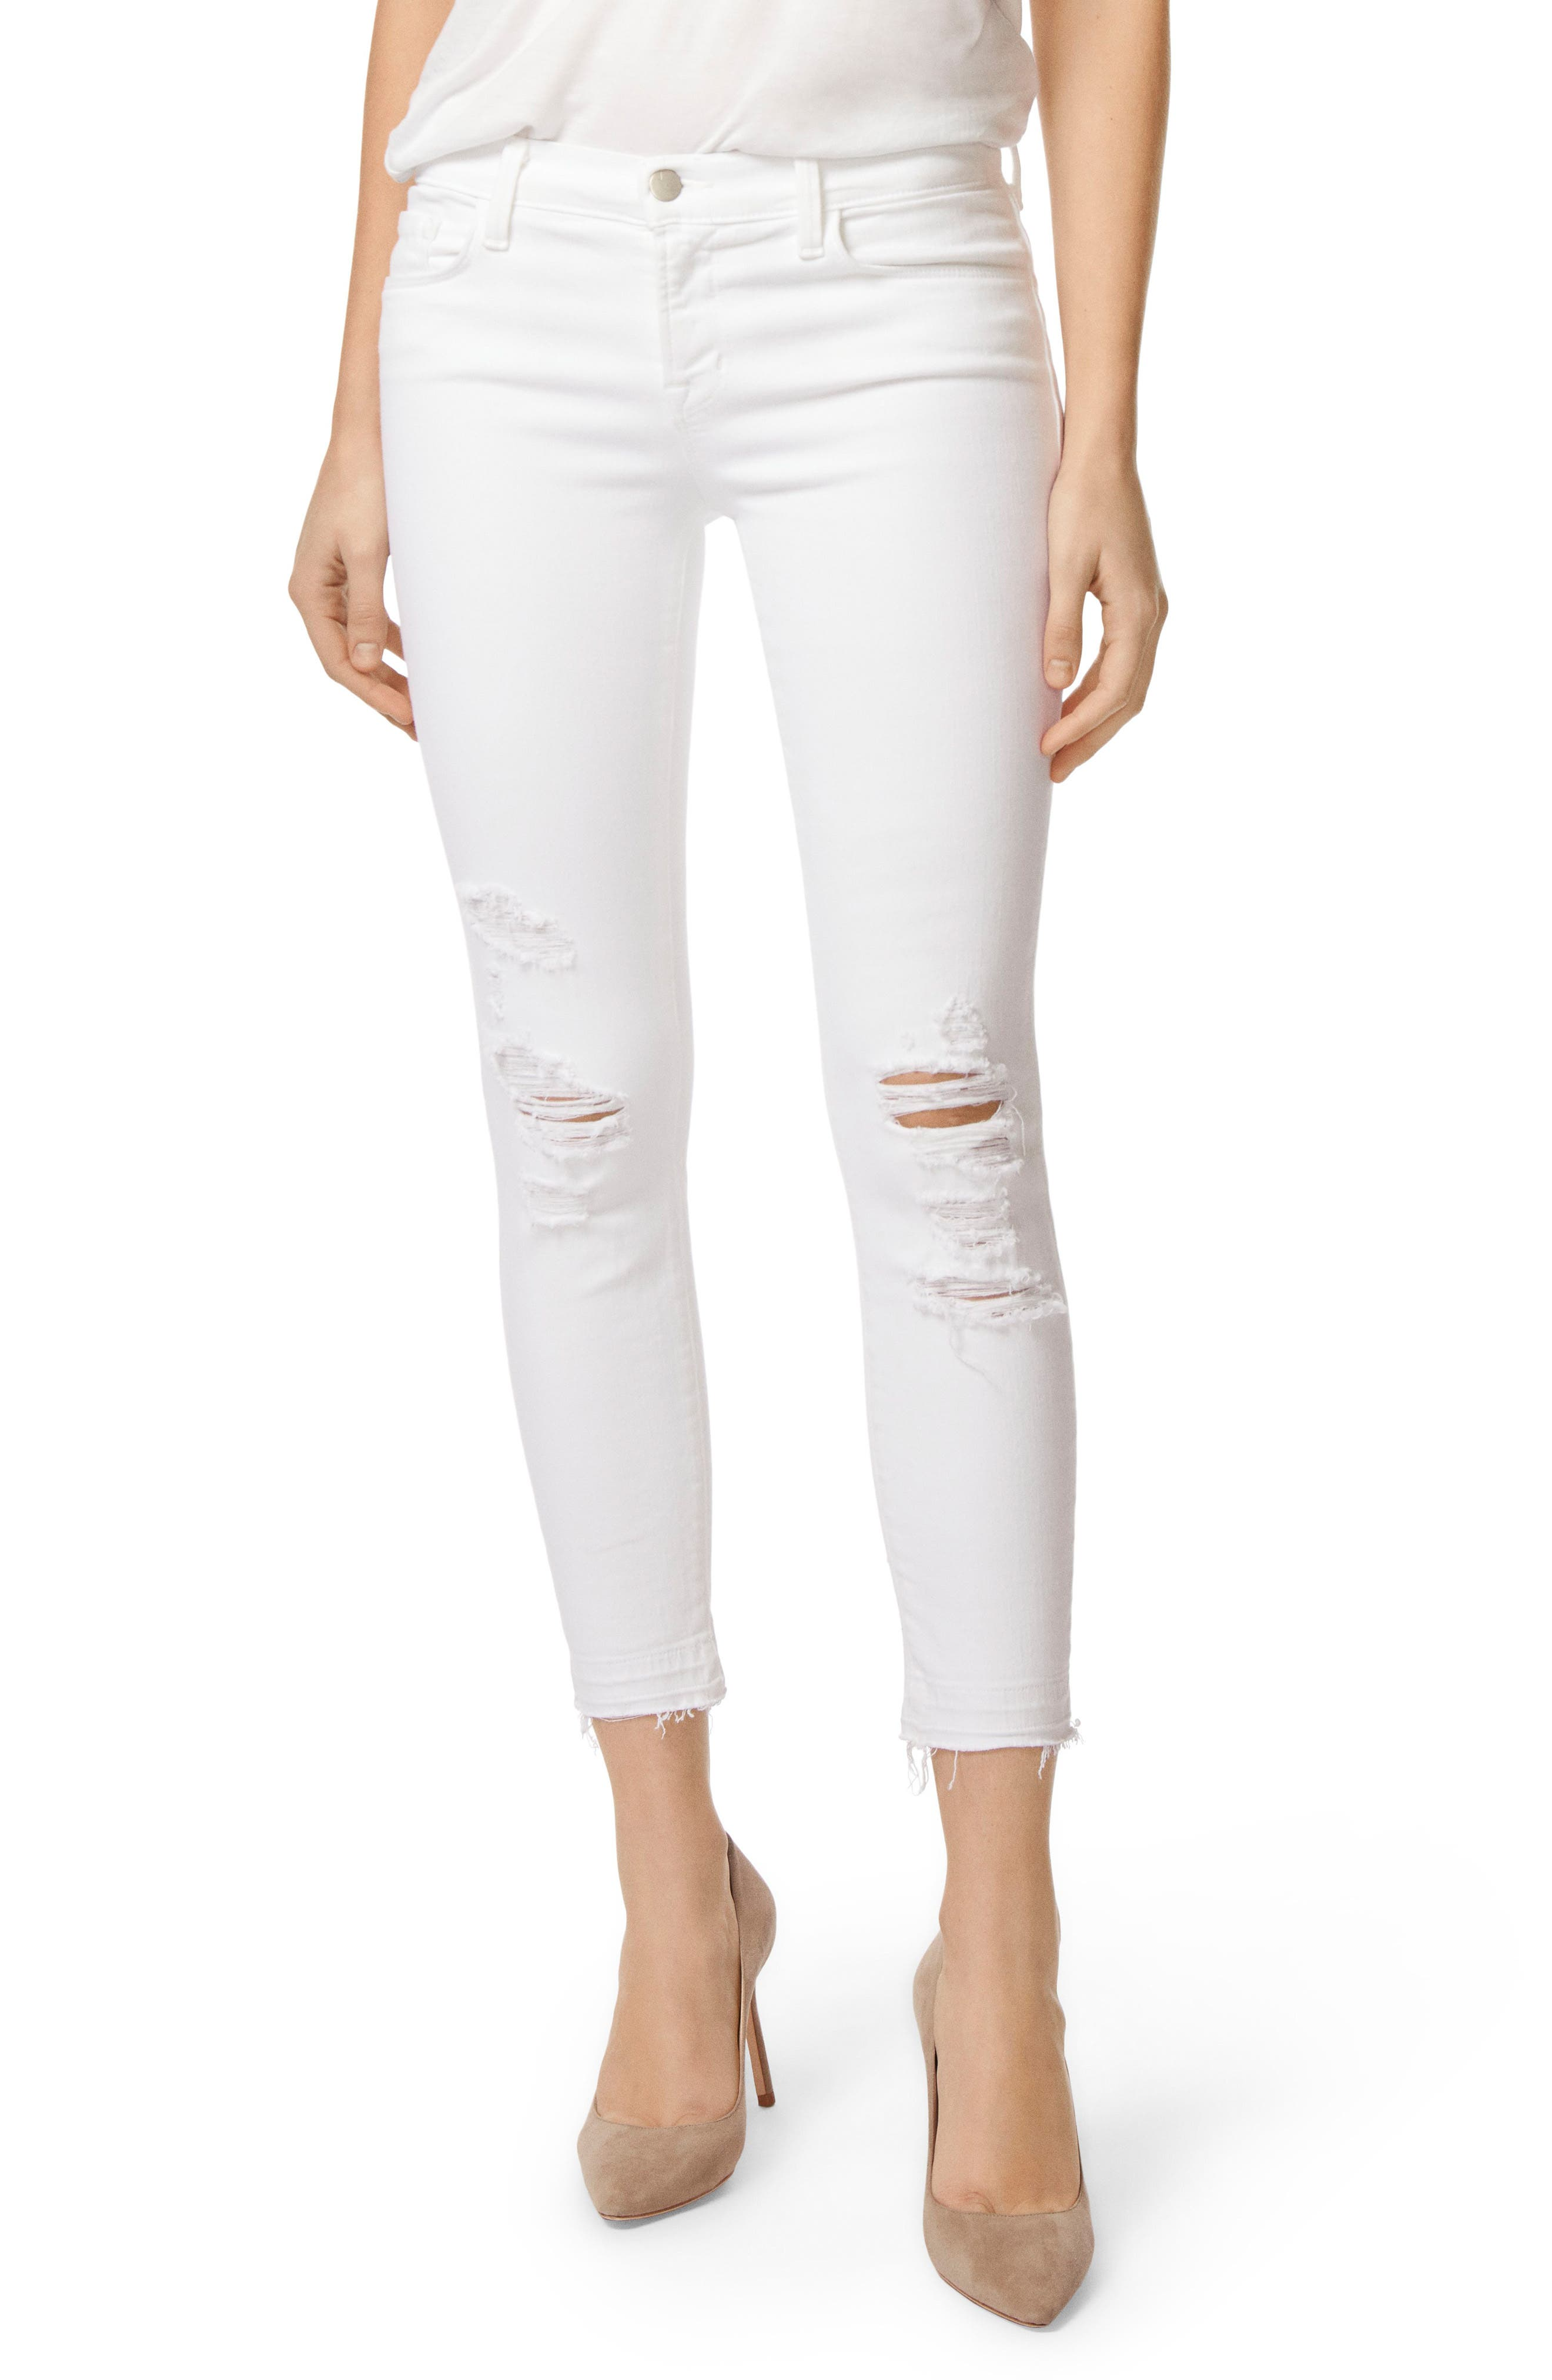 33391c45abc1 J Brand Jeans for Women